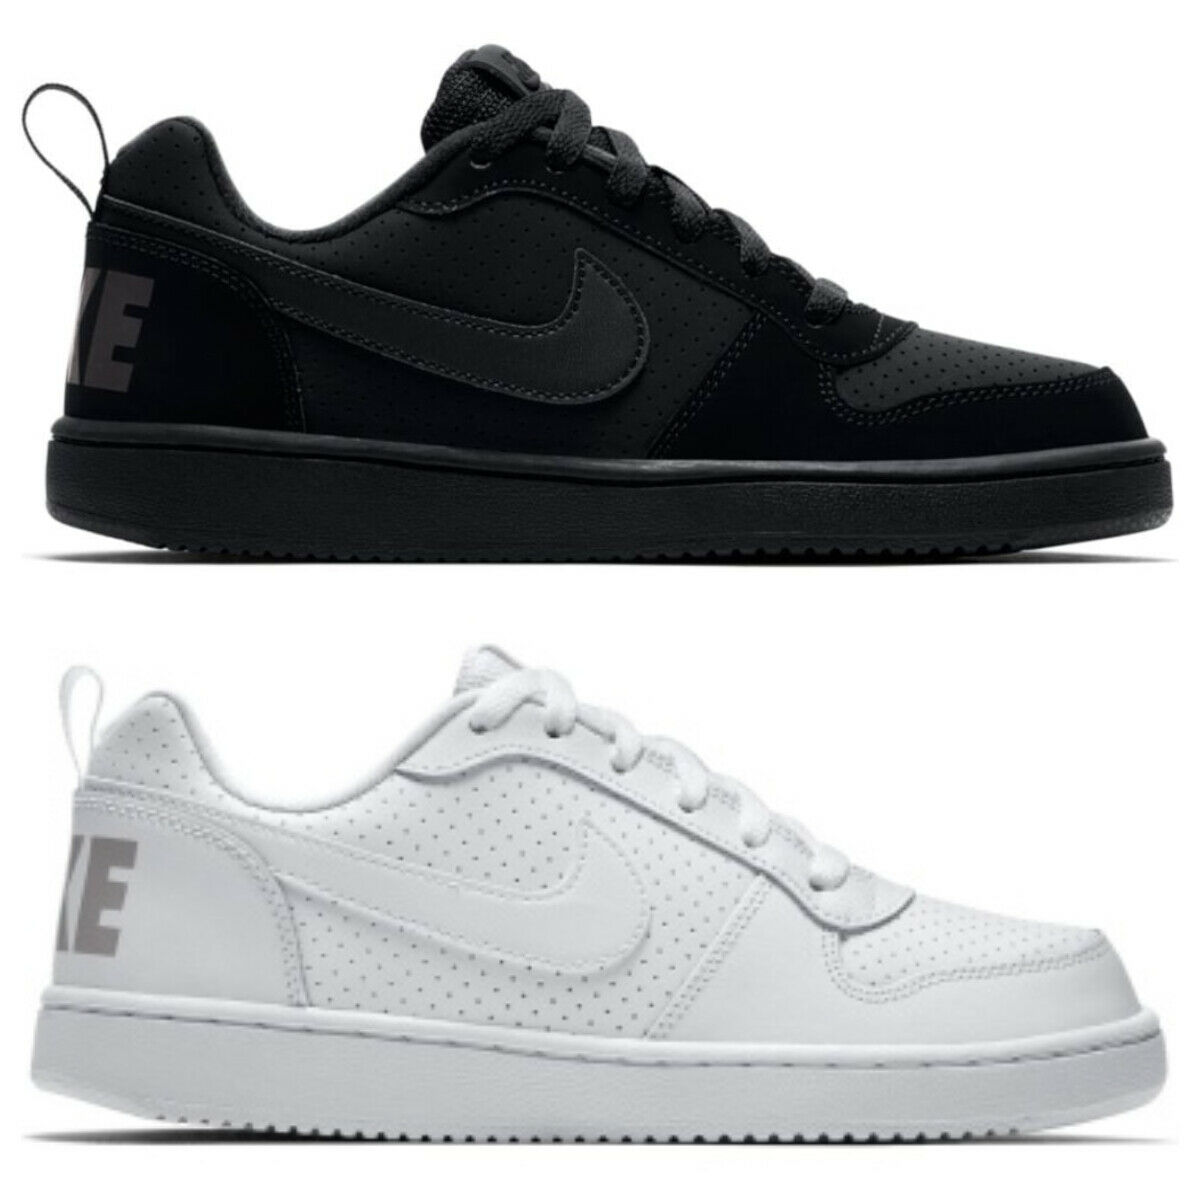 Nike Court Borough Low GS Kinder Damen Sneaker Schuhe 839985 schwarz weiß